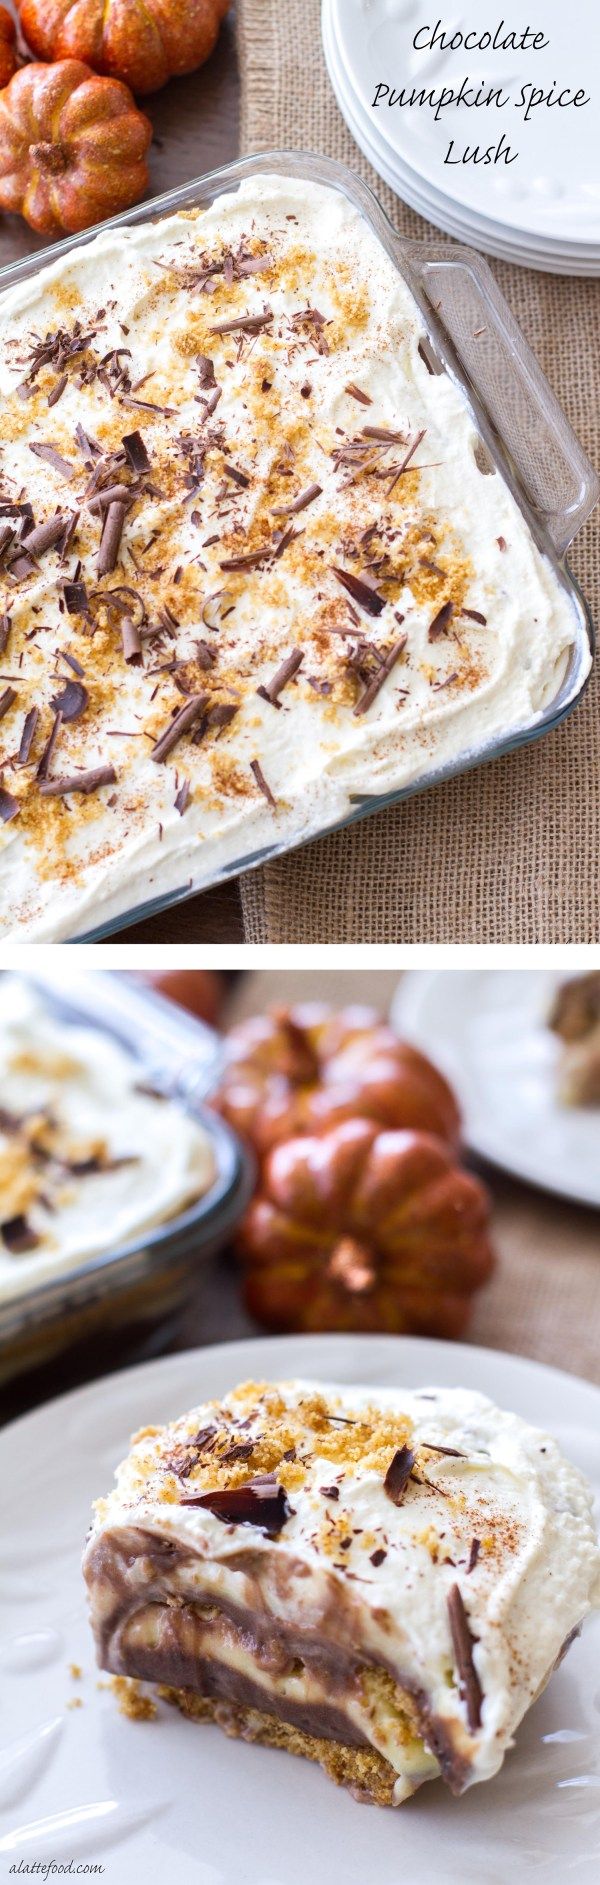 This no bake layered pudding dessert begins with a graham cracker crust, then has layers of chocolate pudding, pumpkin spice pudding, homemade whipped cream, and chocolate shavings! This dessert is a winner.